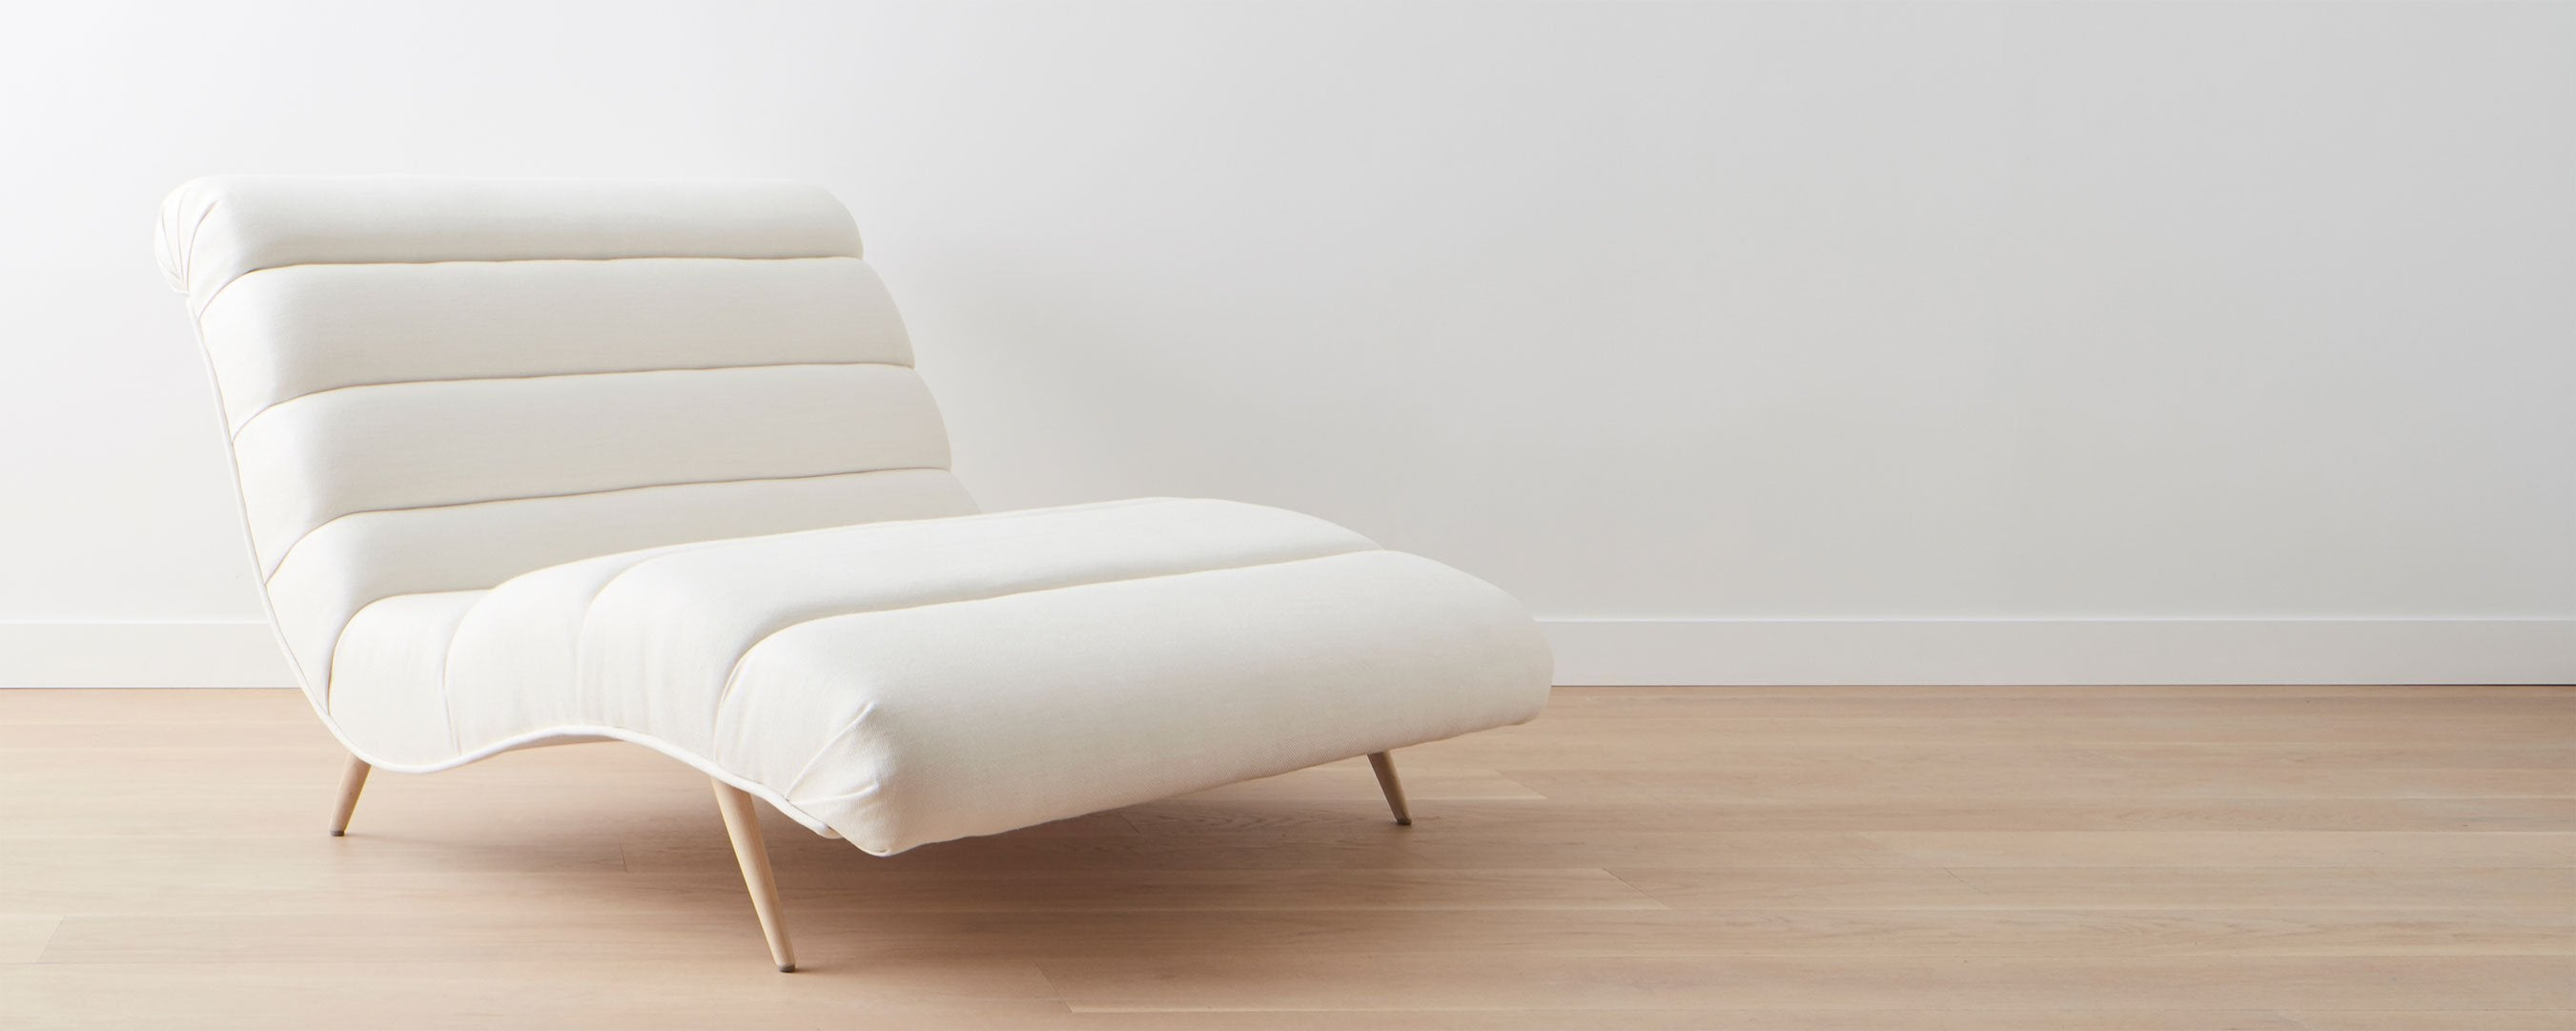 SPECS - the homenature chaise